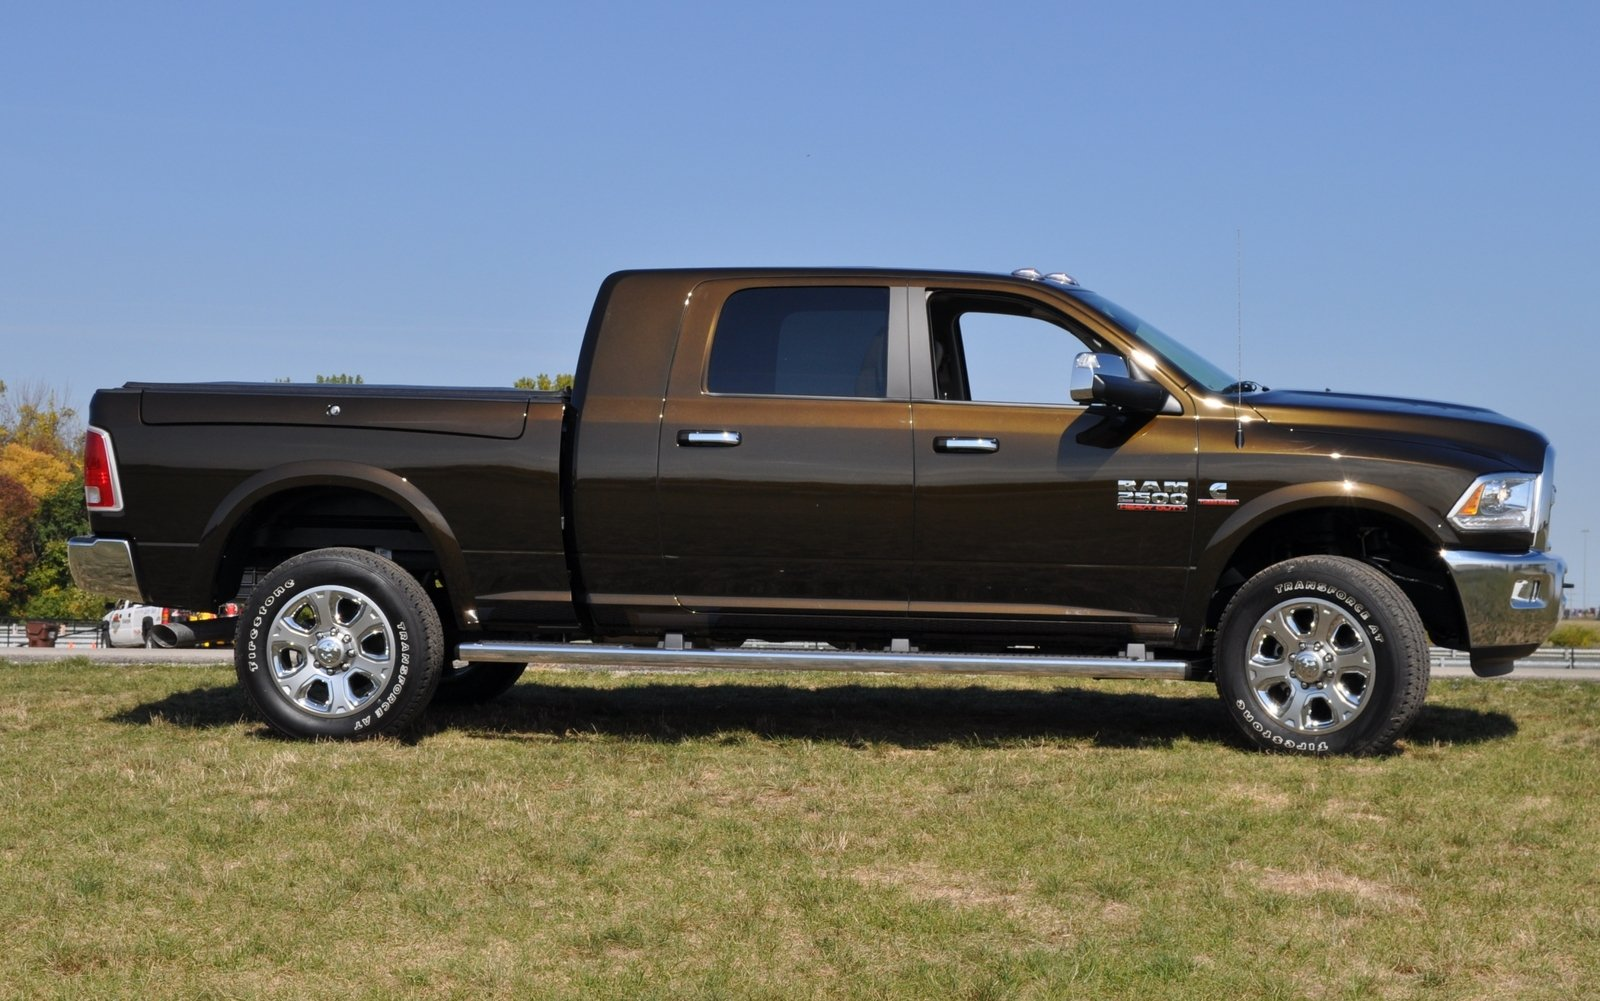 2014 ram 2500hd cummins driven picture 529487 car review top speed. Black Bedroom Furniture Sets. Home Design Ideas